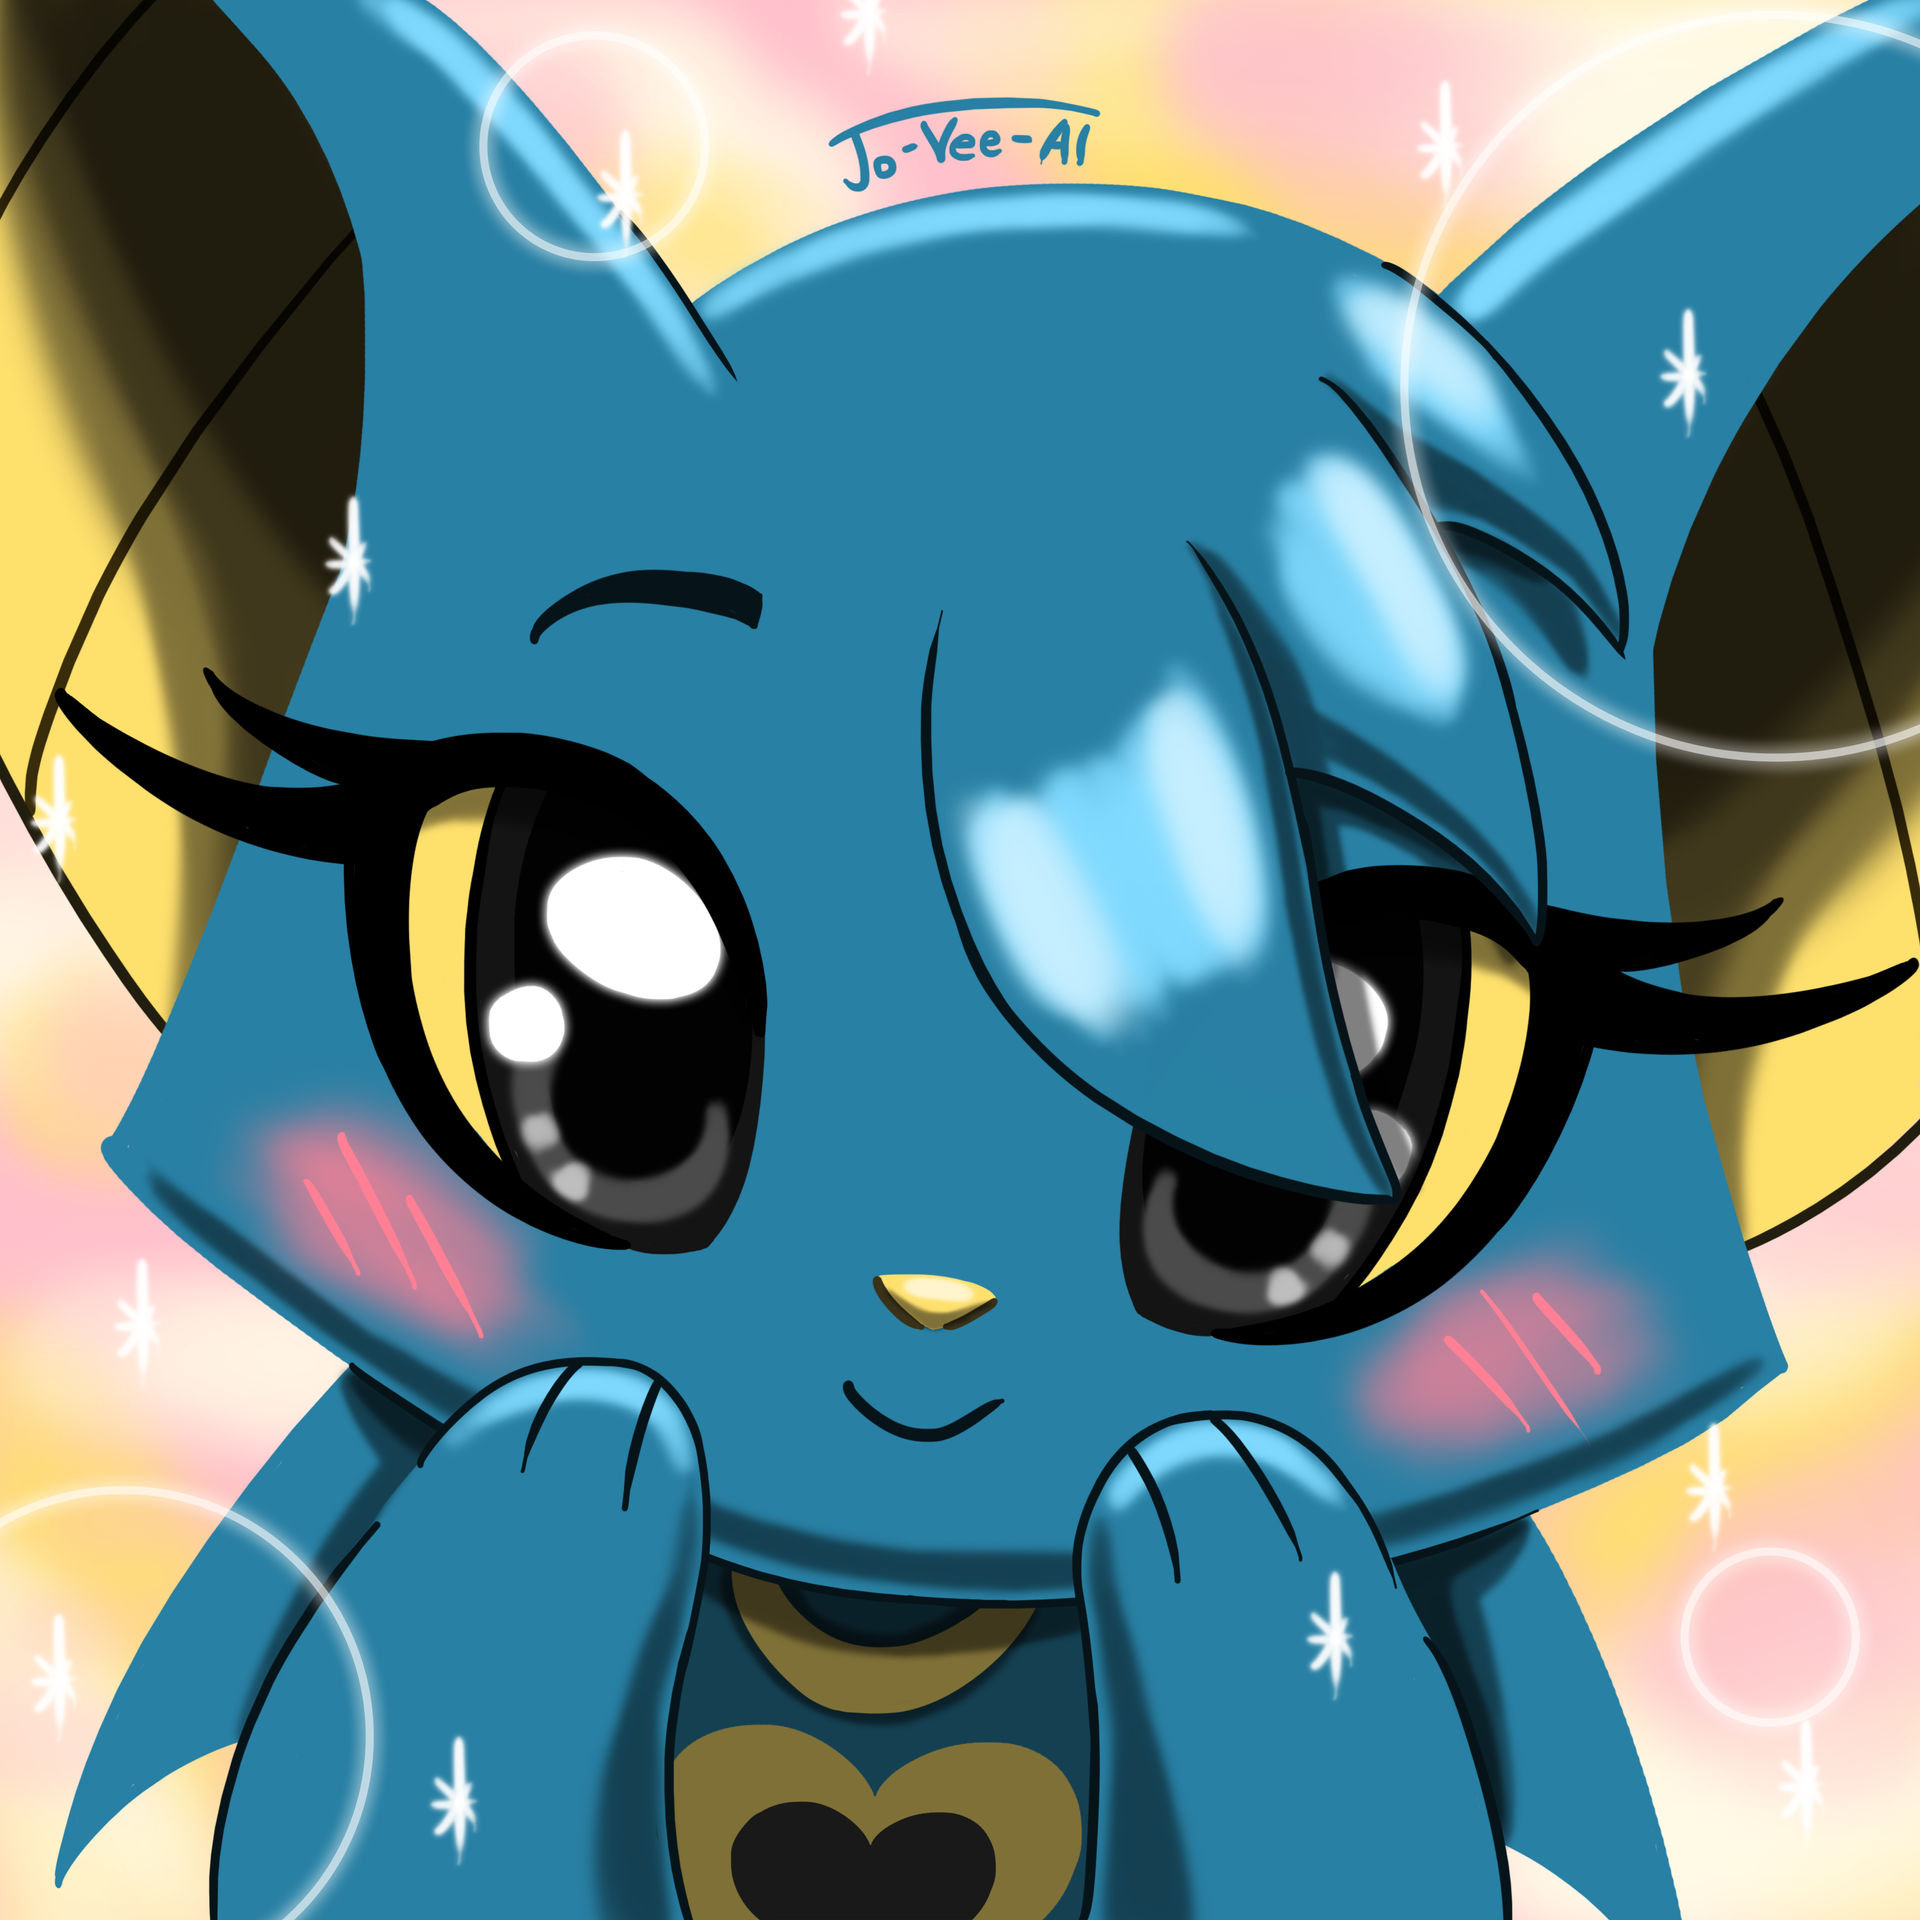 Adorabat Closeup By Jo Vee Al On Deviantart It's a step above, like hot is more than warm. adorabat closeup by jo vee al on deviantart